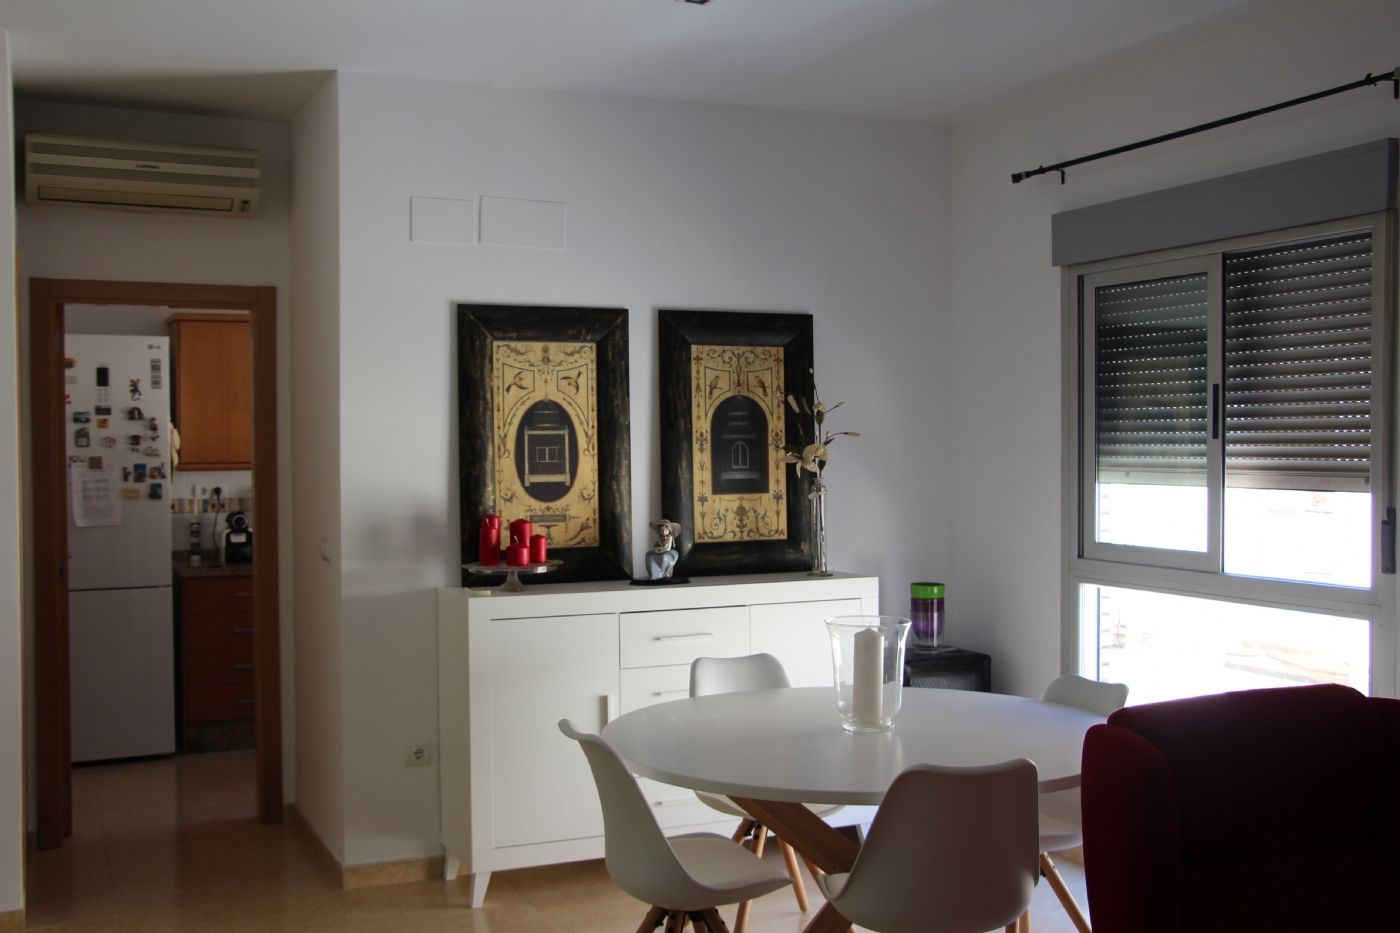 Semi detached house in Calle de ramon y cajal, 4. Bonita casa en corbera